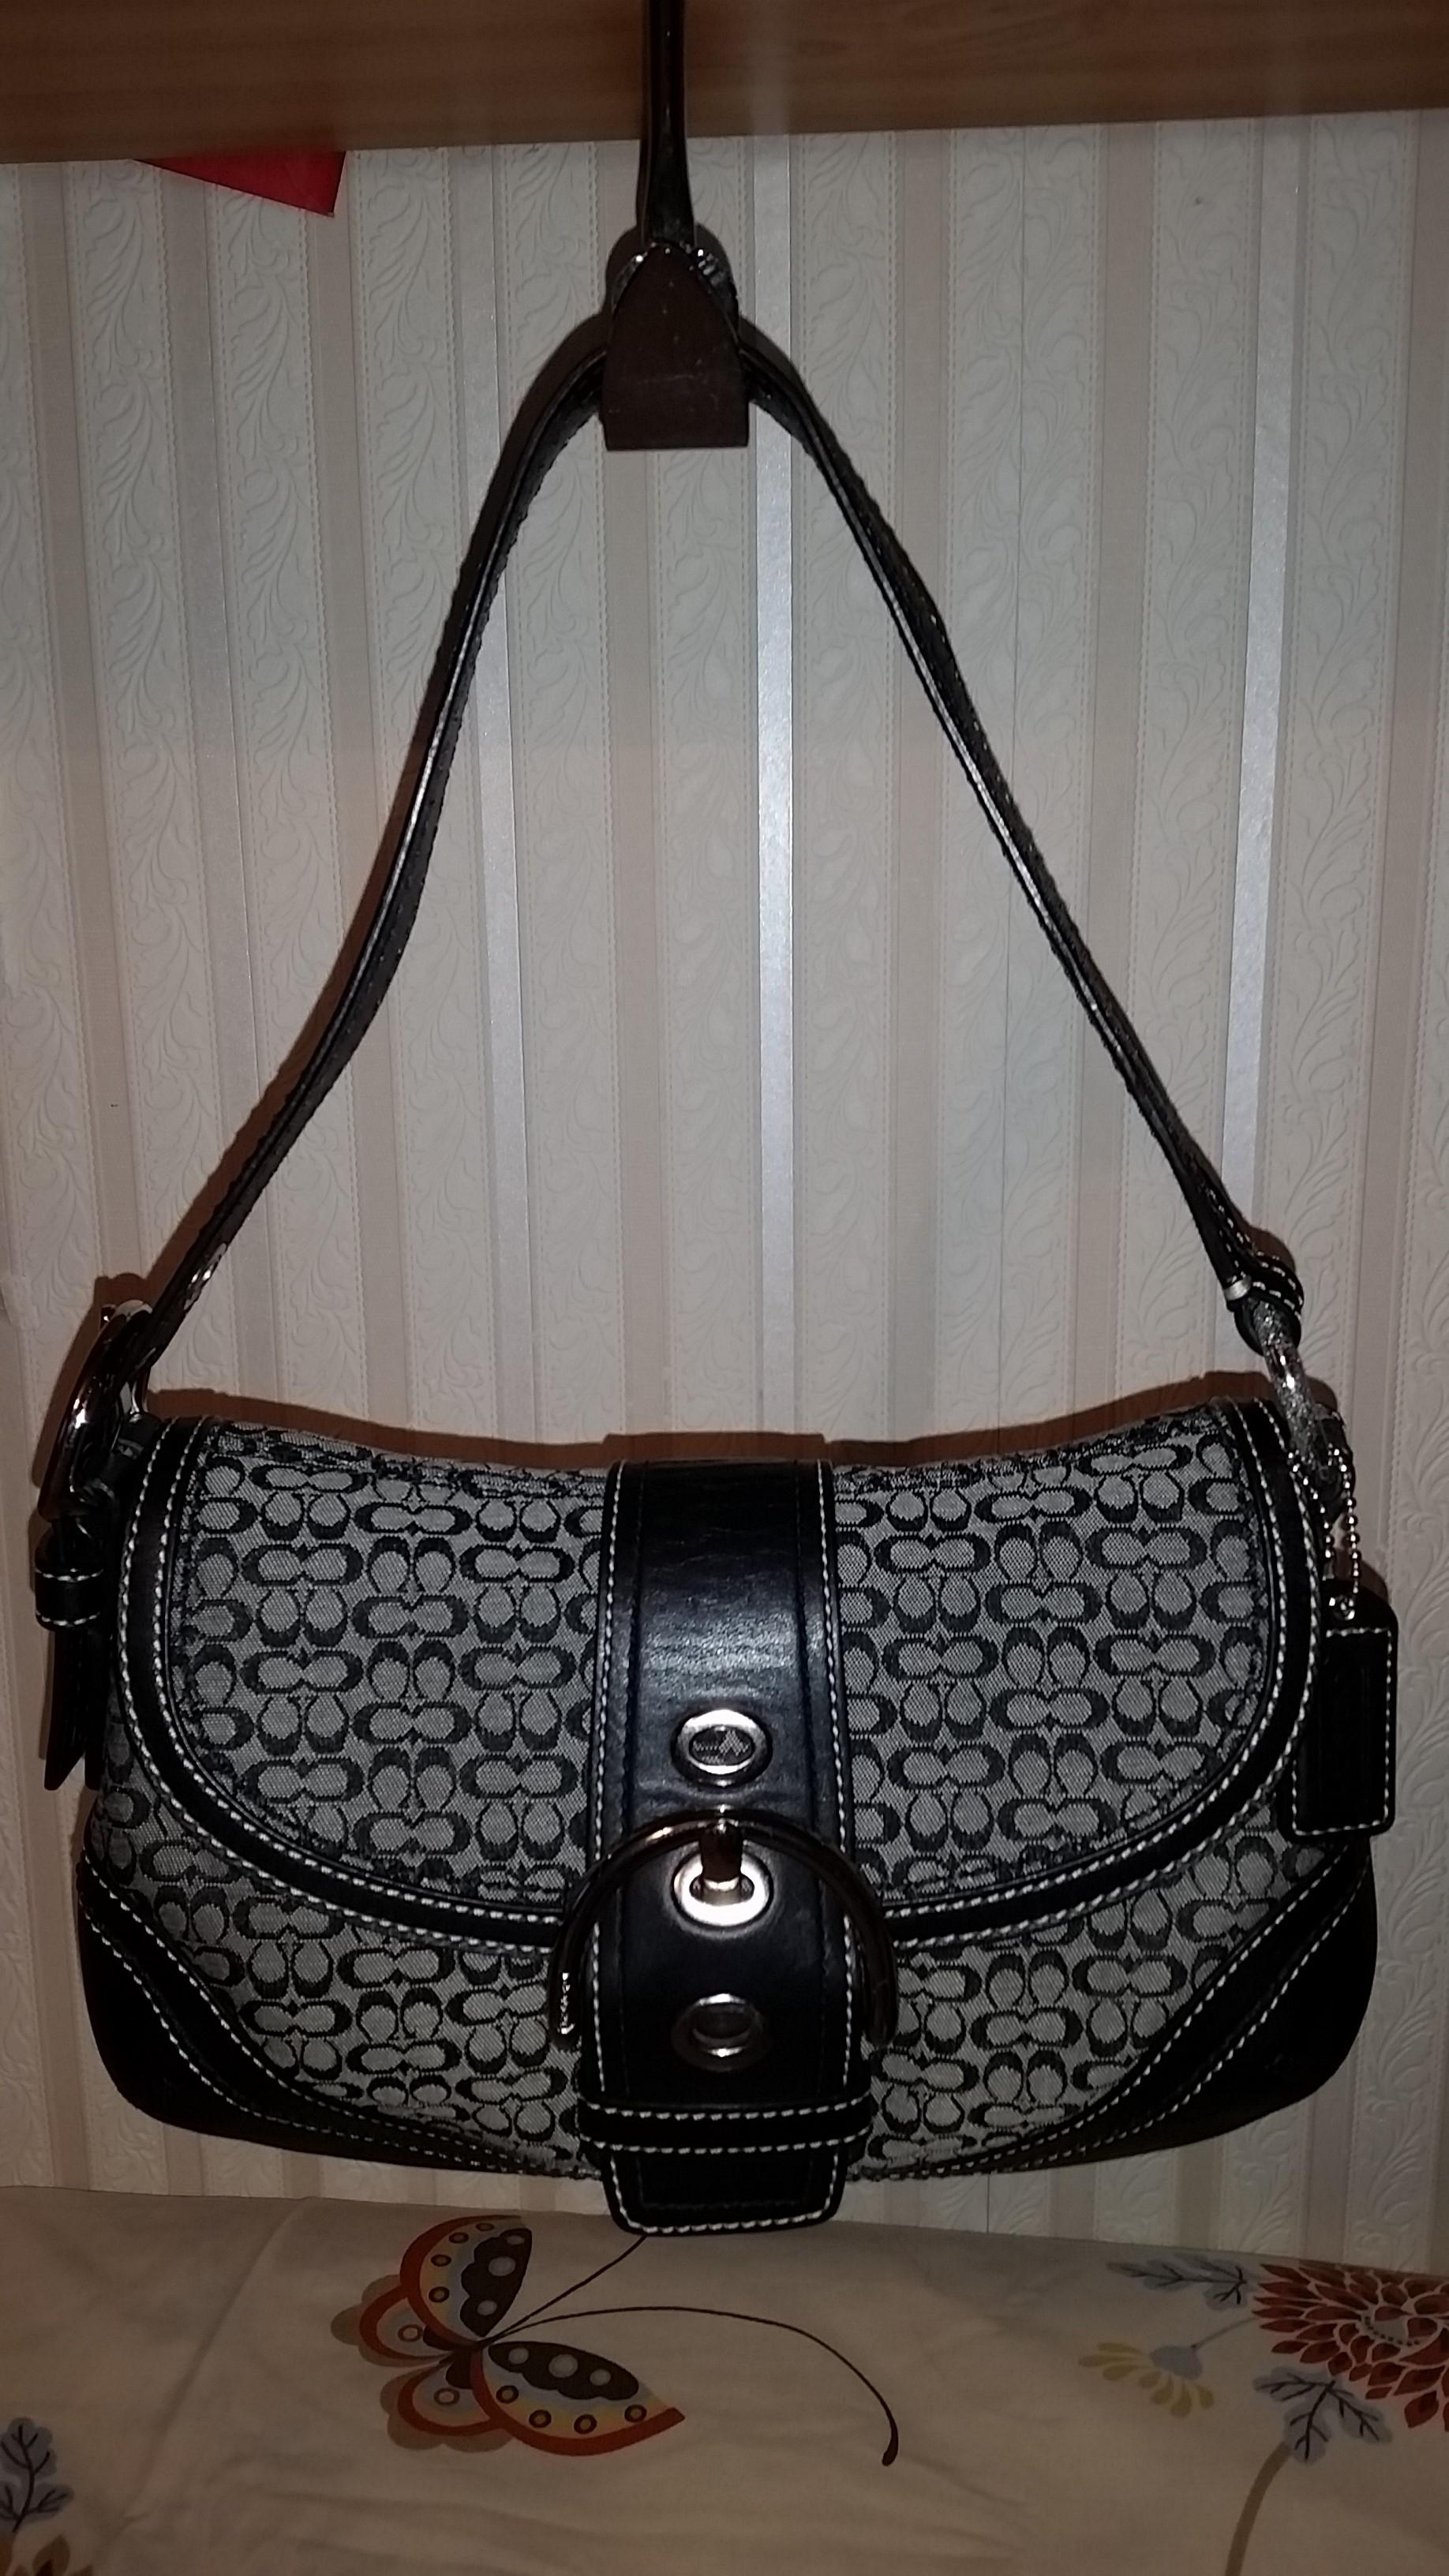 Coach Reserve N. Pls Don't Buy!!! Shoulder Bag low-cost - www ...